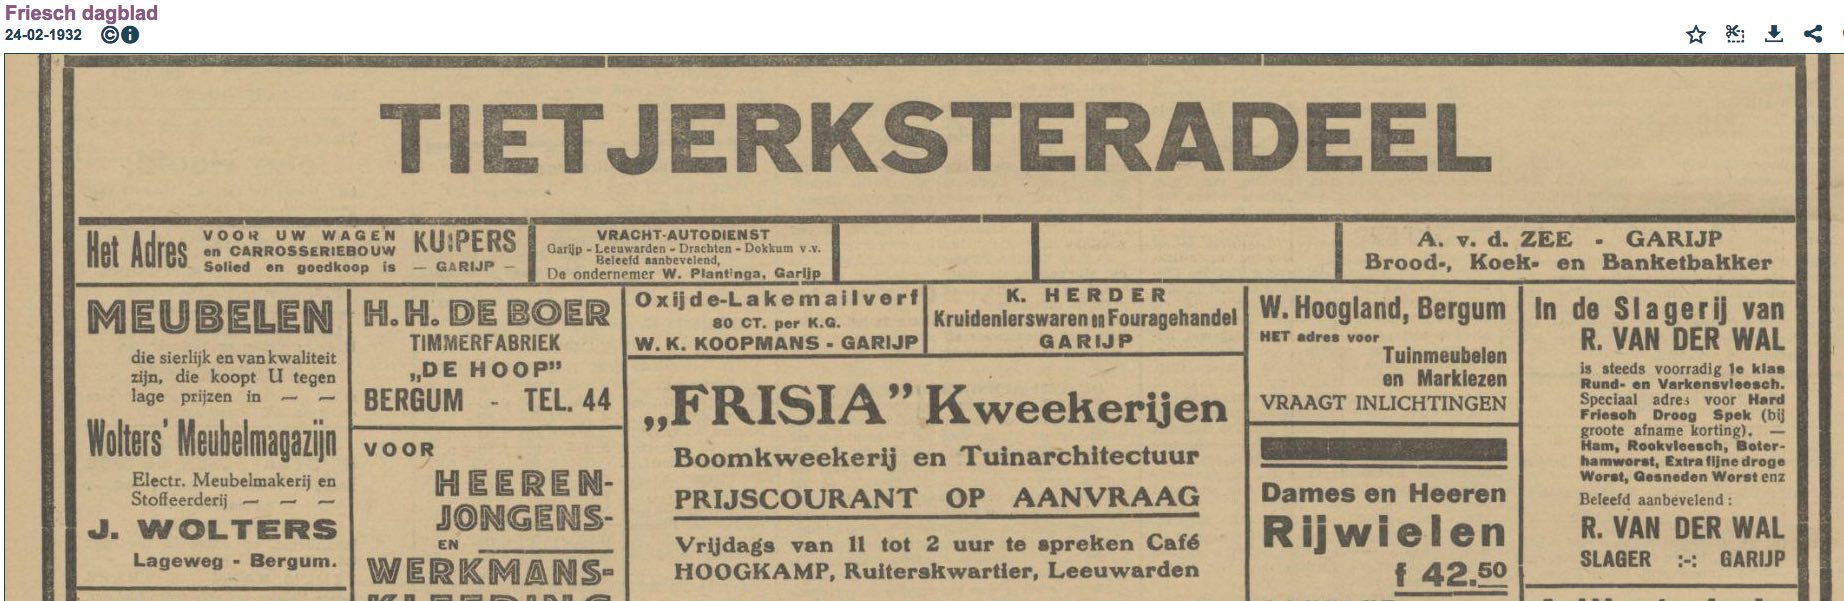 FD 24 02 1932 Advert Ondernemers A